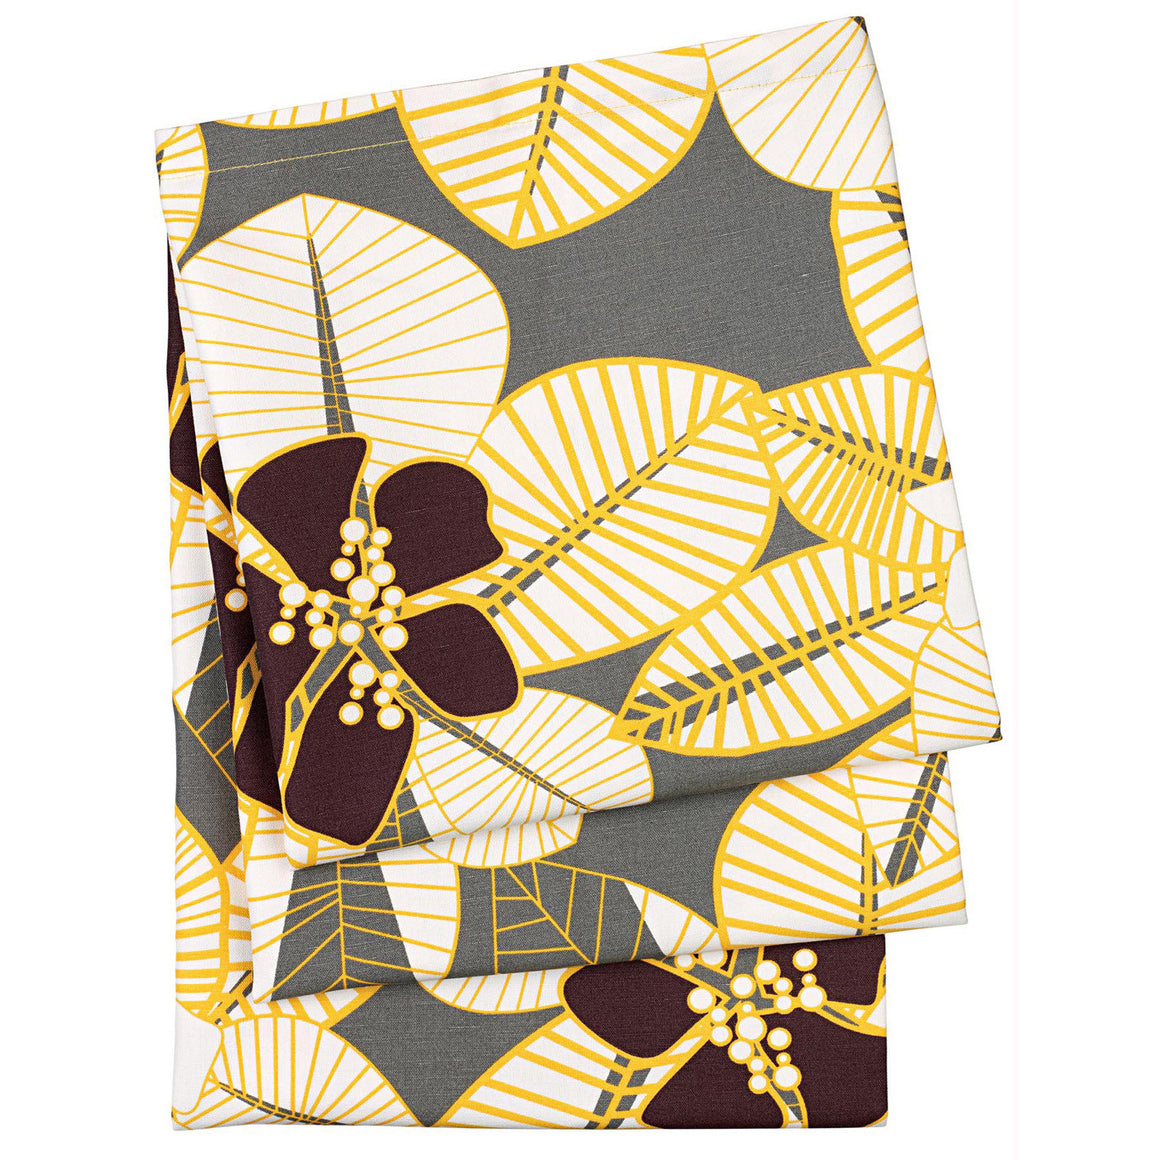 Tiki Tropical Floral Pattern Cotton Linen Tablecloth in Grey, Yellow and Brown